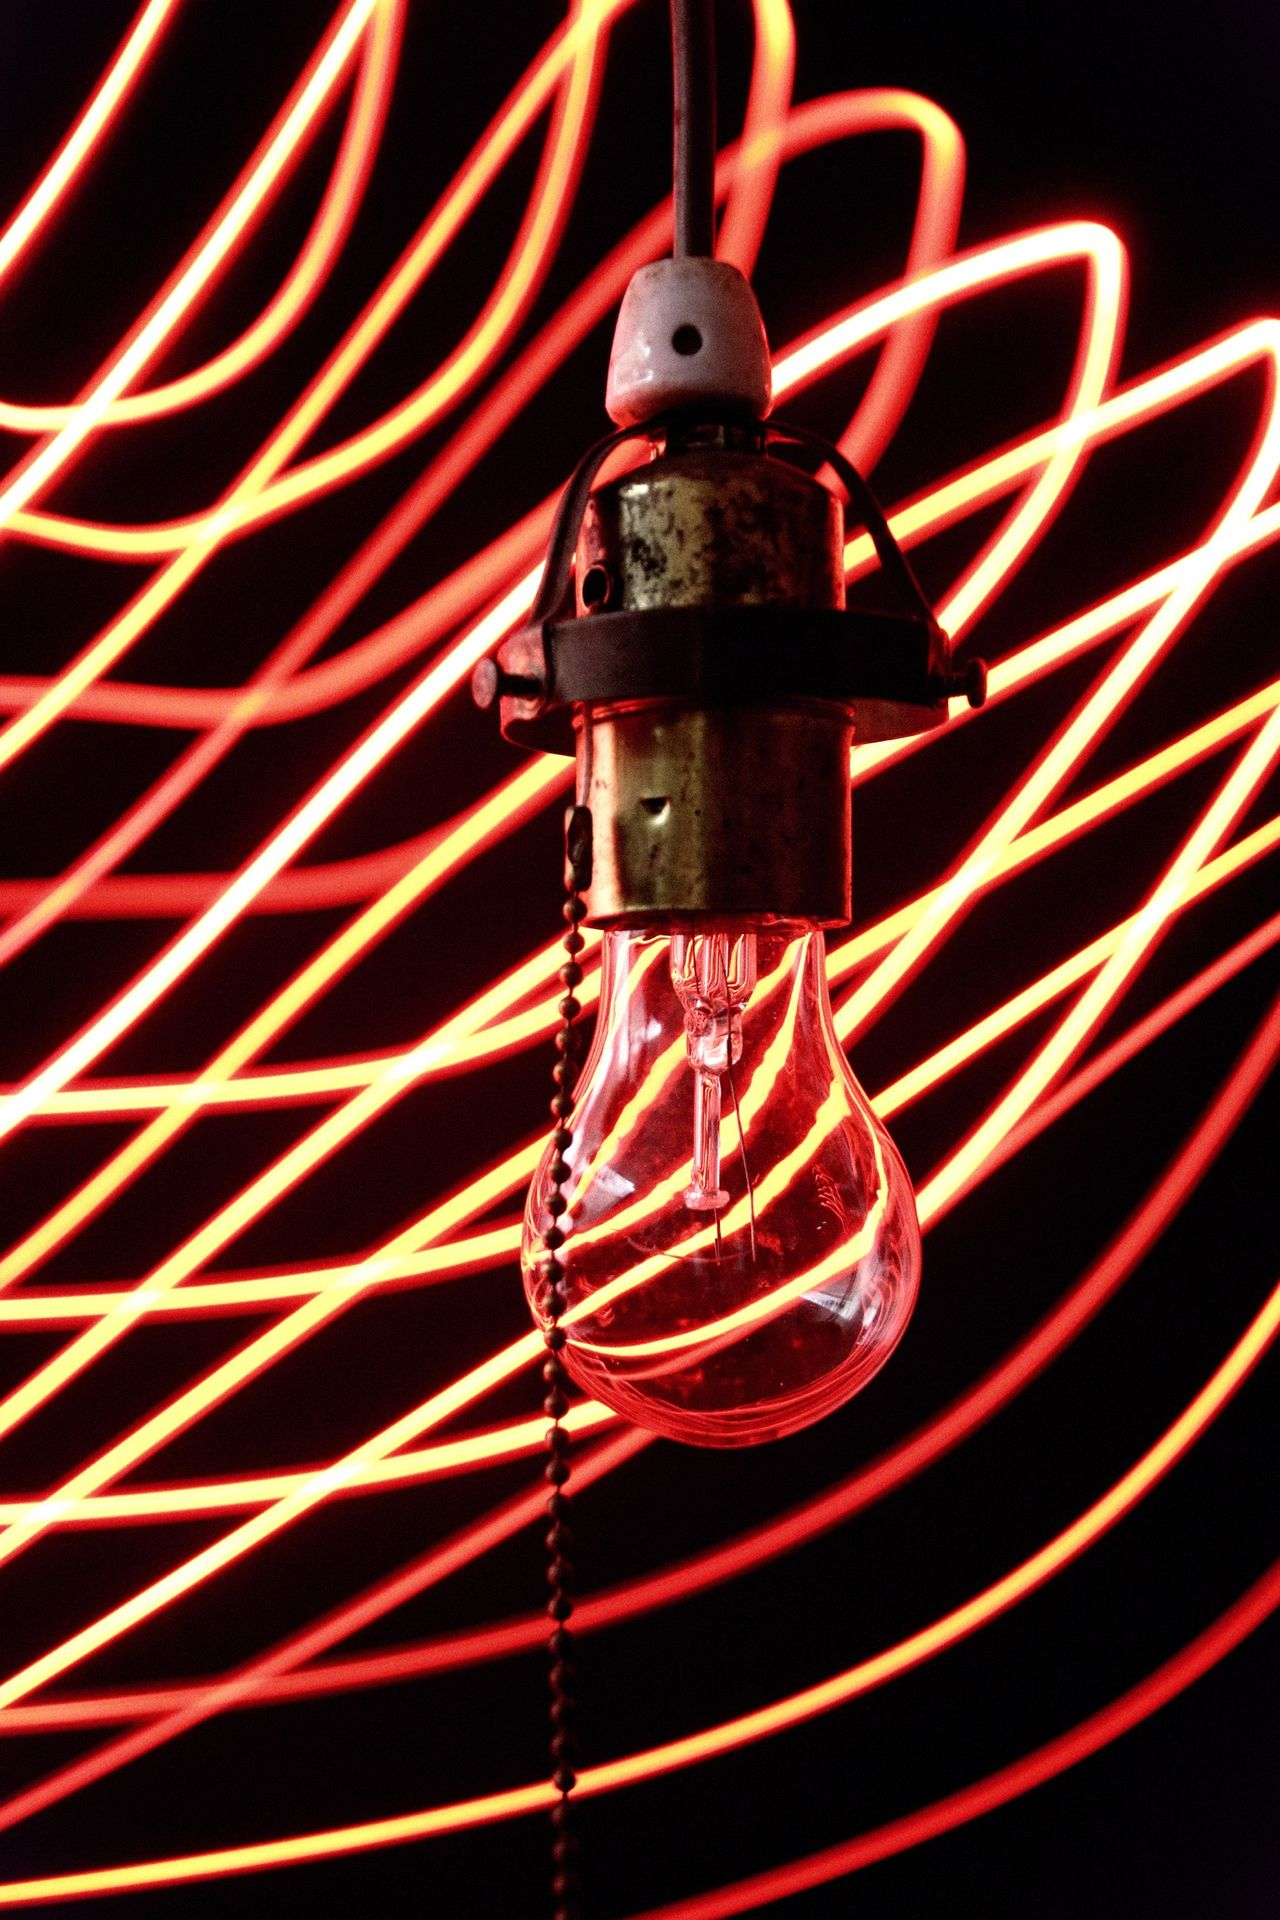 Close-up of electric bulb by light trails against black background